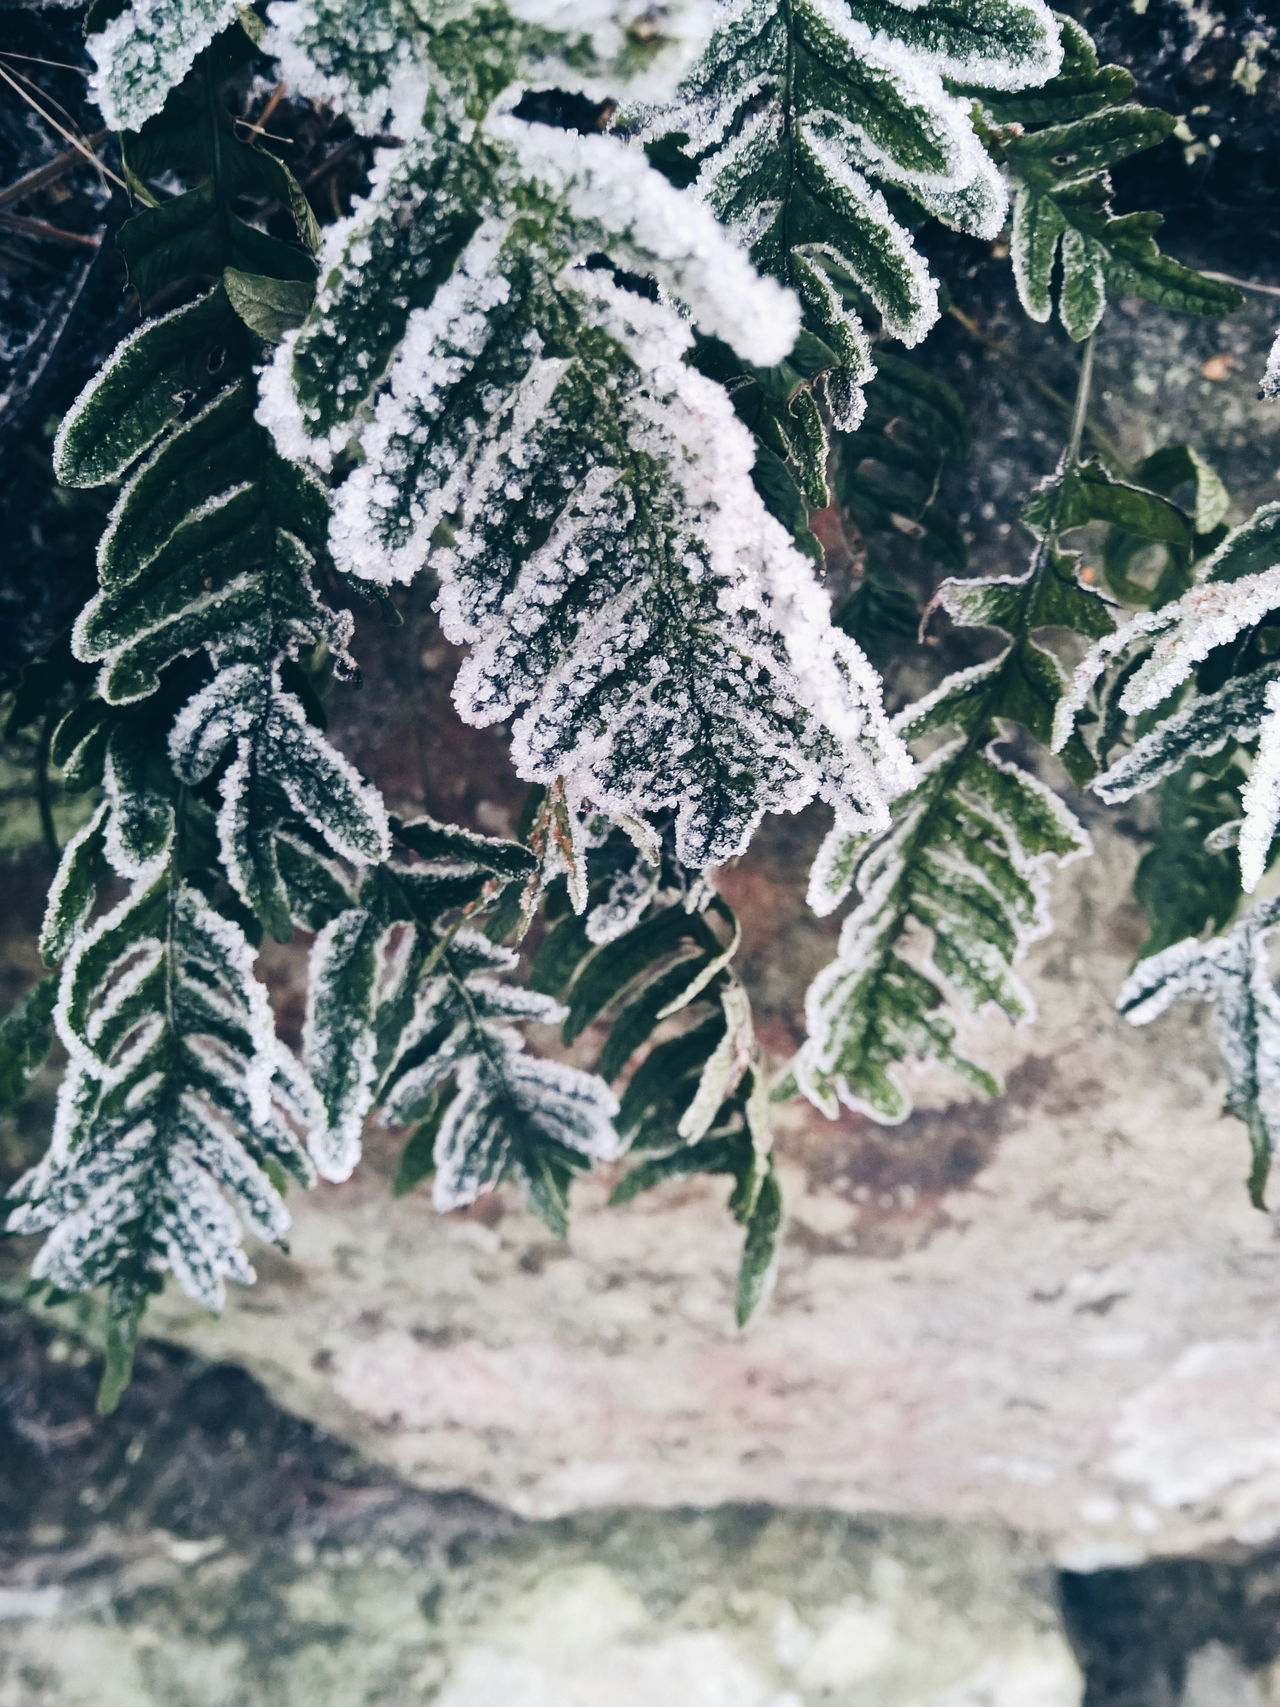 Abundance Botany Change Close Up Close-up Cold Cold Days Day Fern Focus On Foreground Fragility Frost Frosty Geology Geometry Green Growing Growth Leaf Nature Physical Geography Landscapes With WhiteWall It's Cold Outside Winter Wintertime